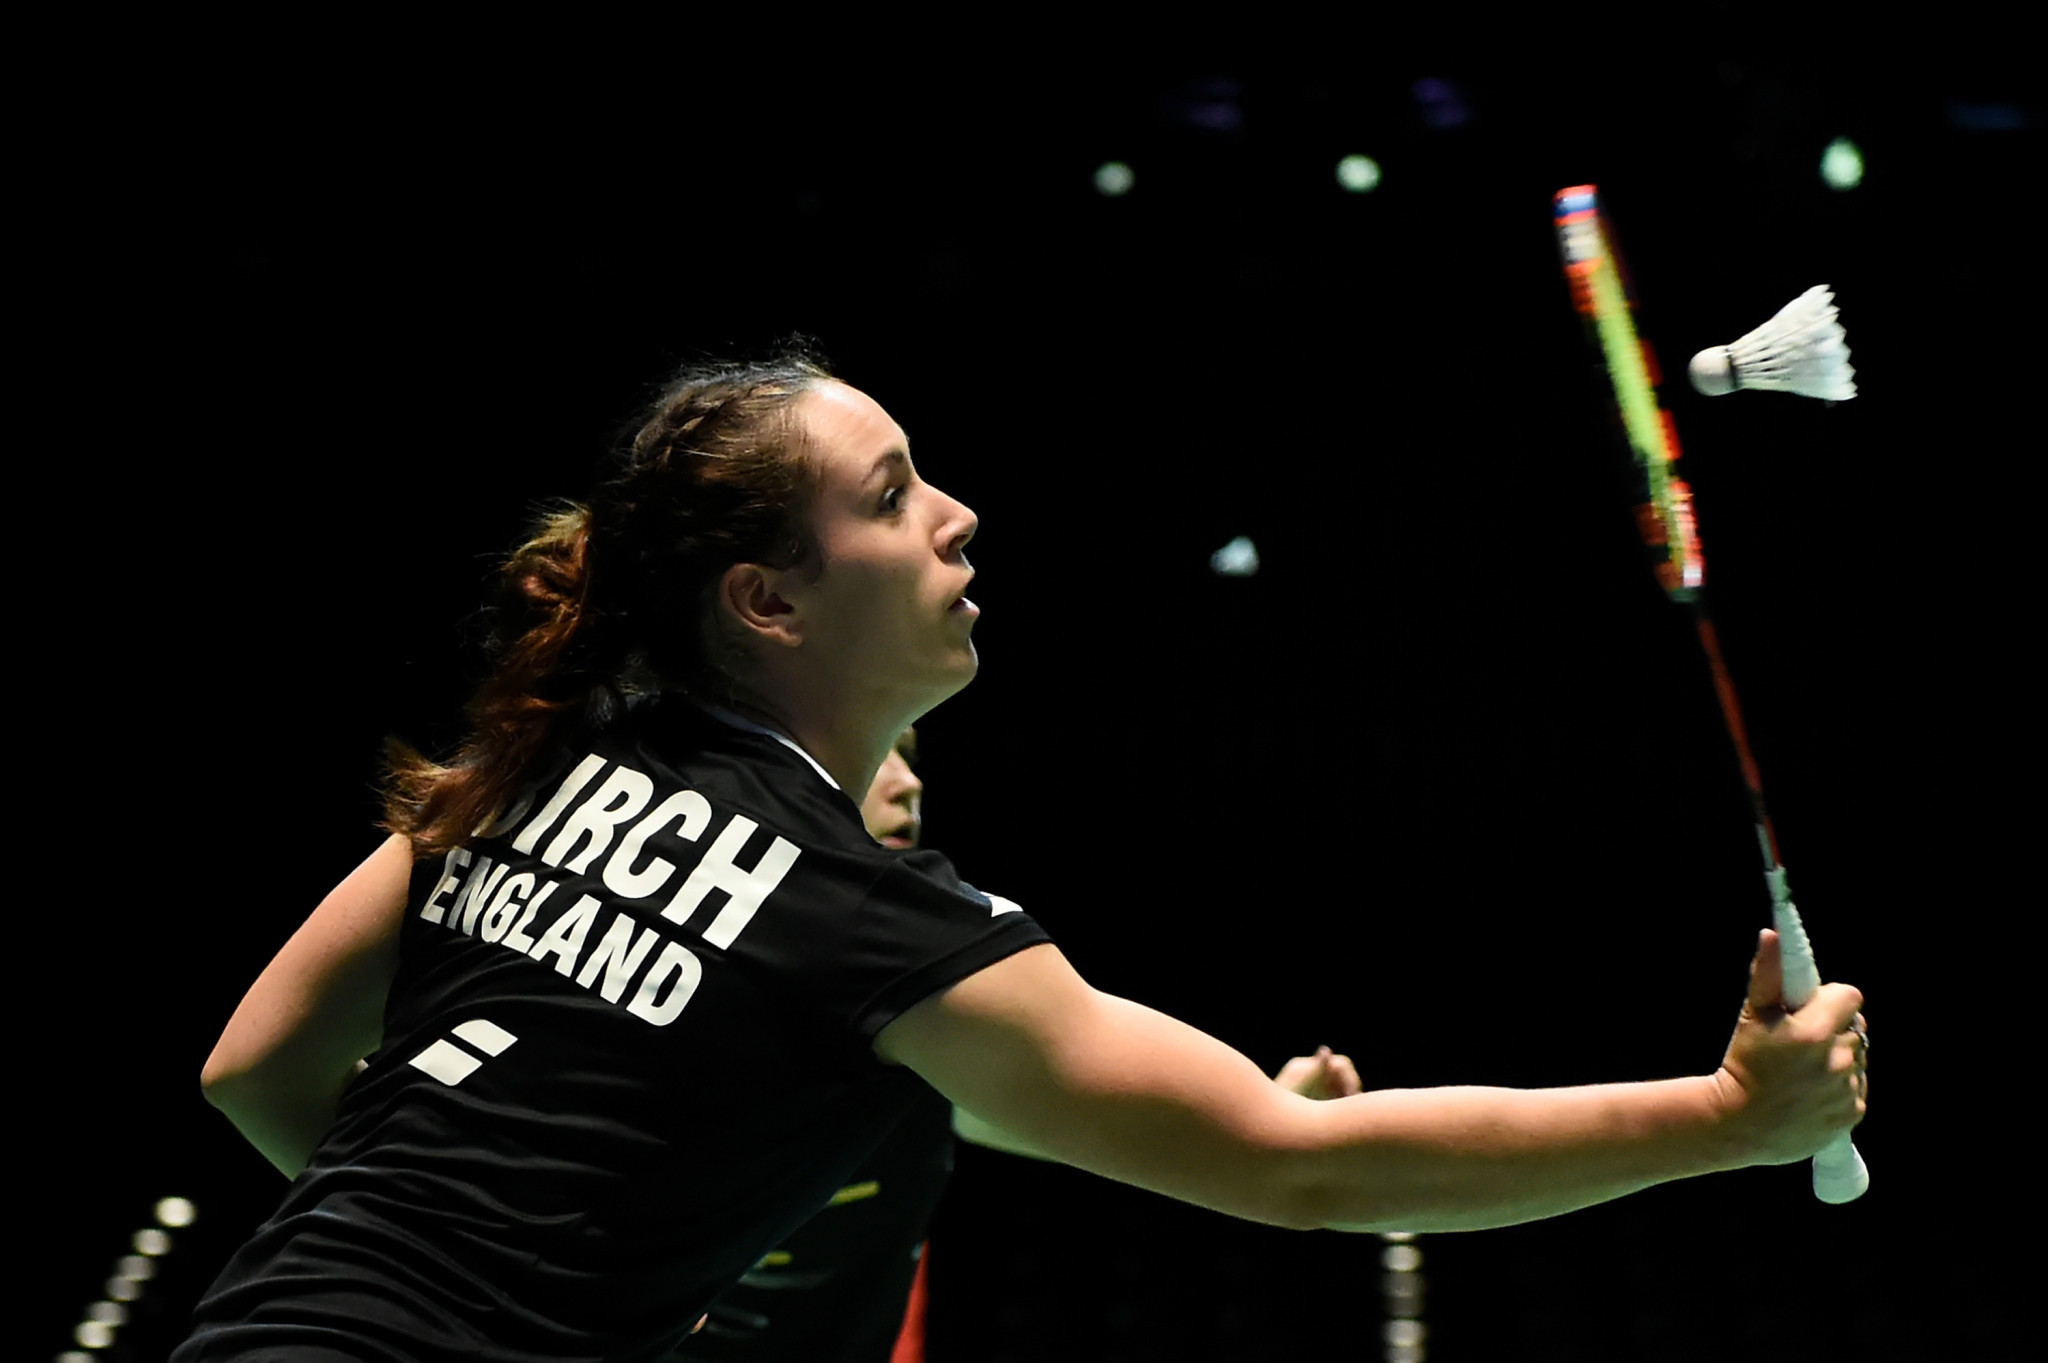 England to host Badminton European Mixed Team Championships in 2021